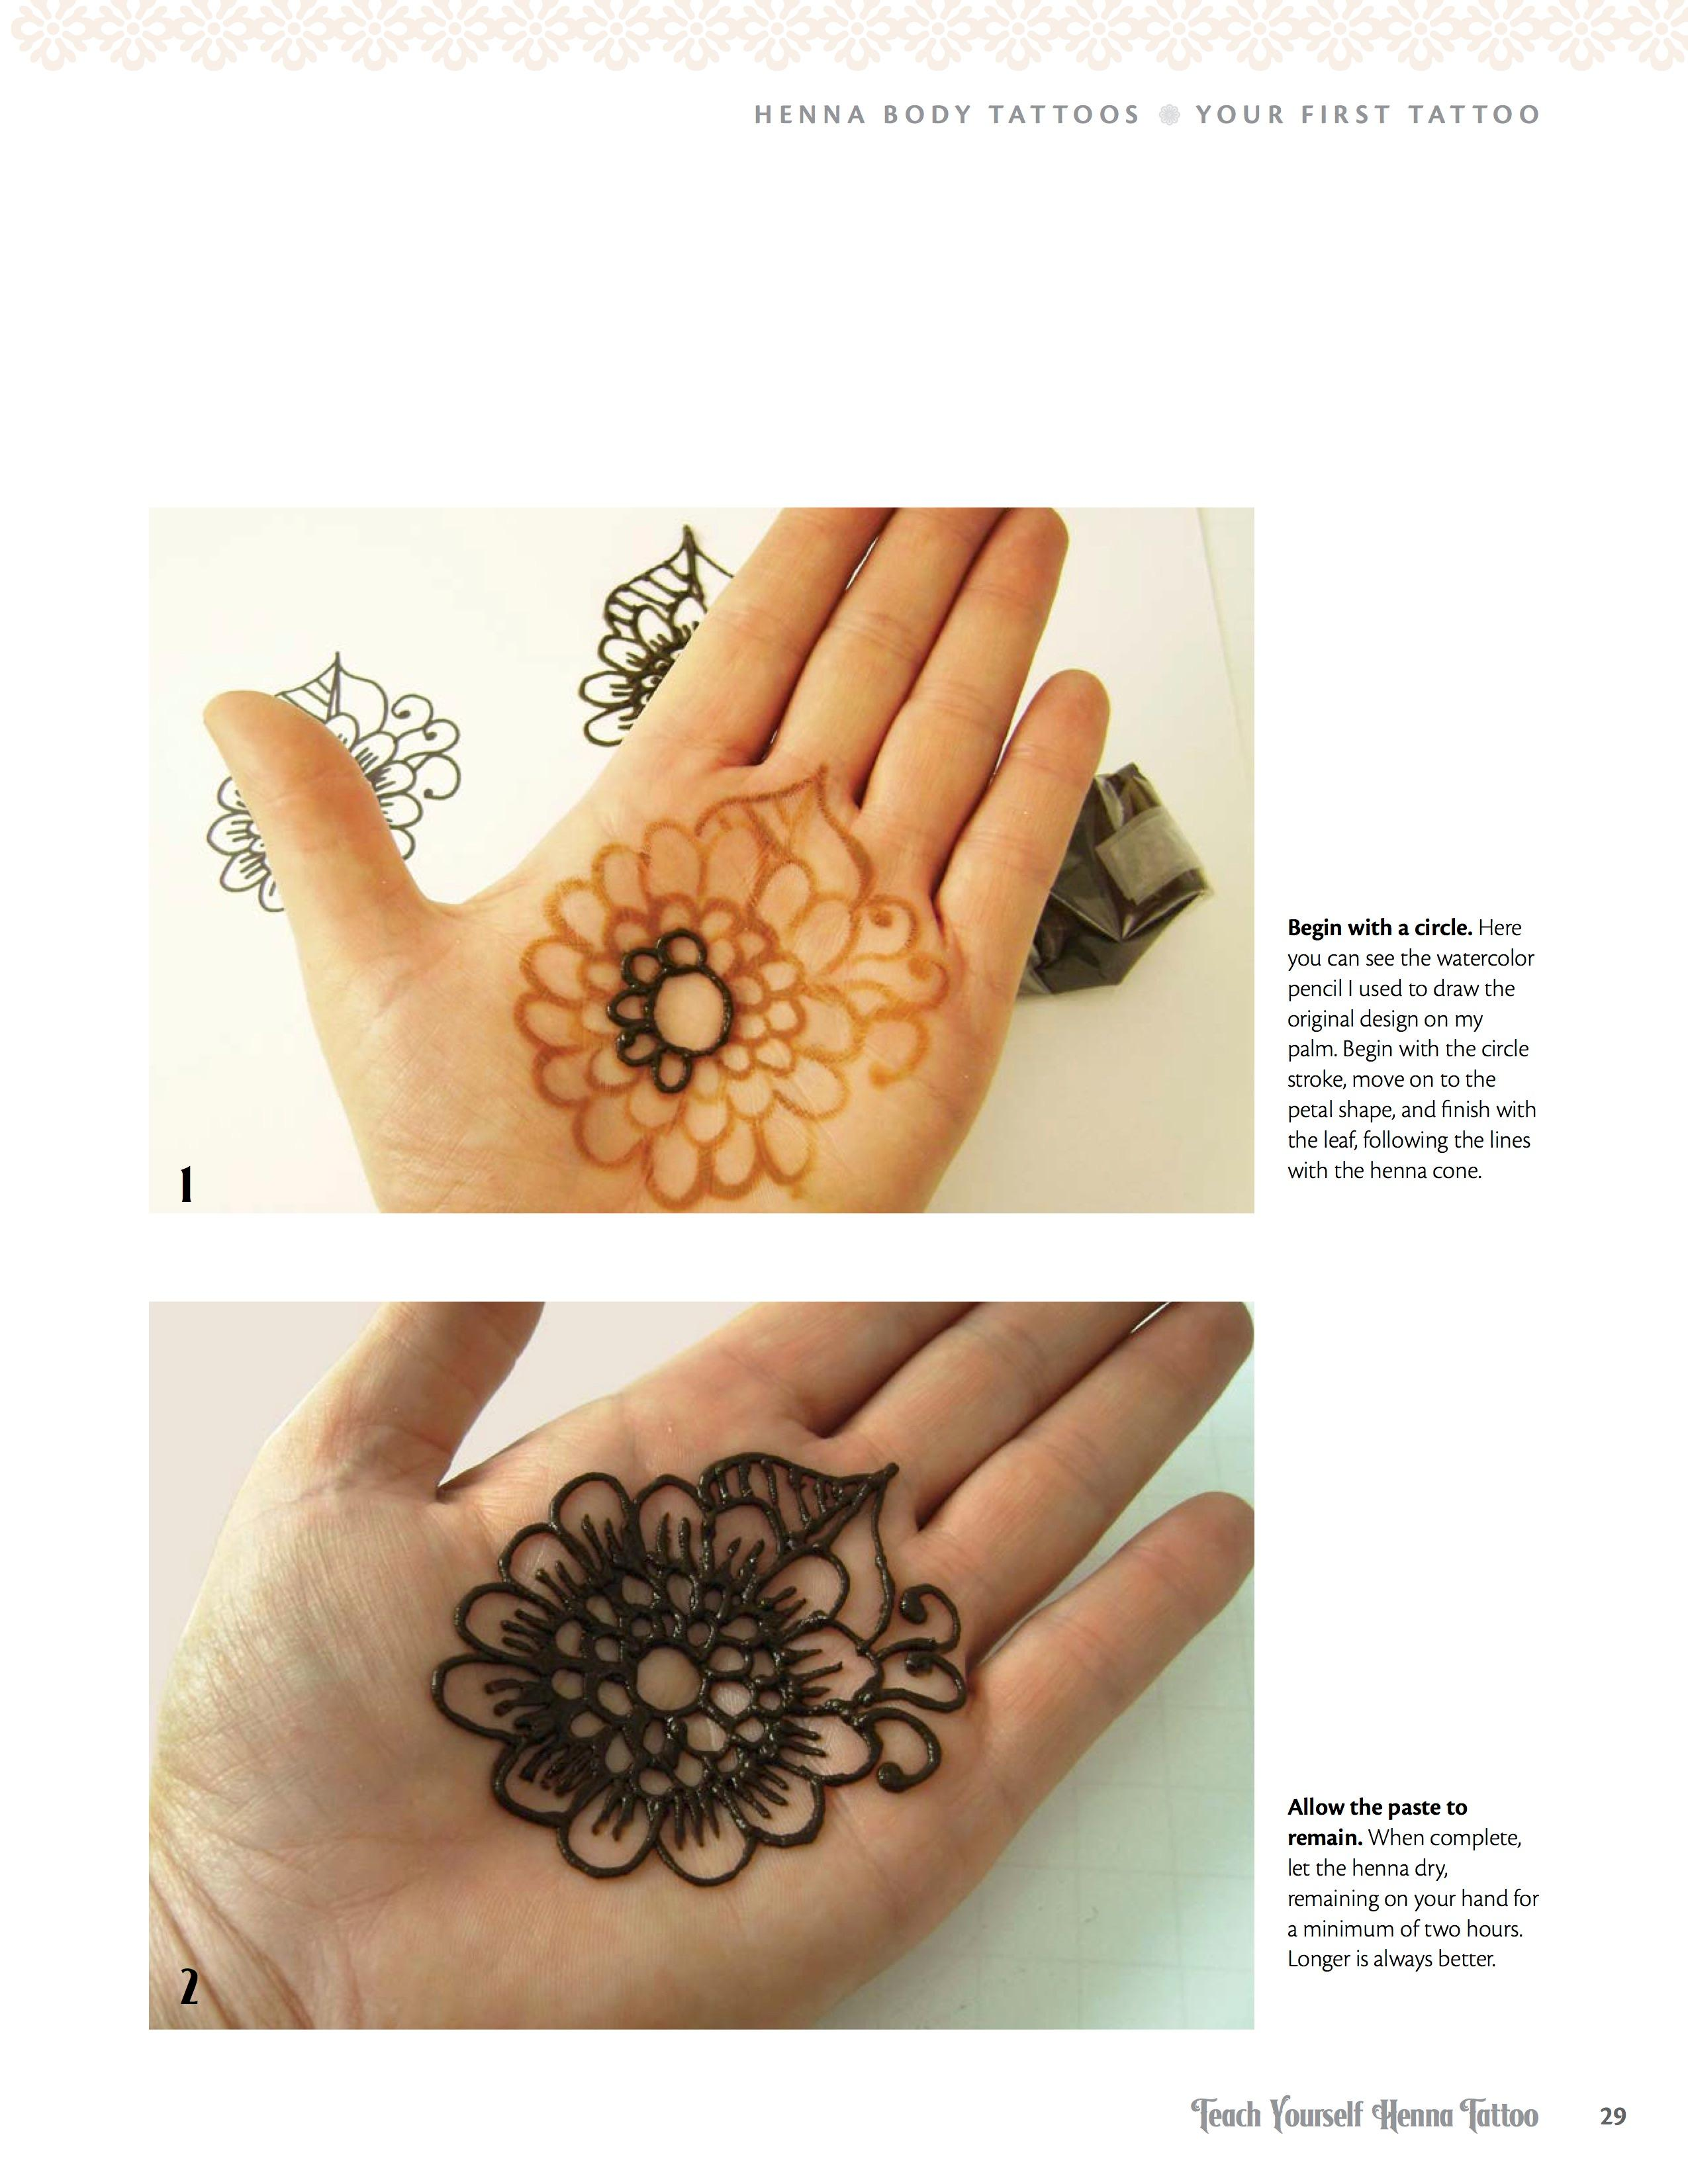 Teach Yourself Henna Tattoo Making Mehndi Art With Easy To Follow